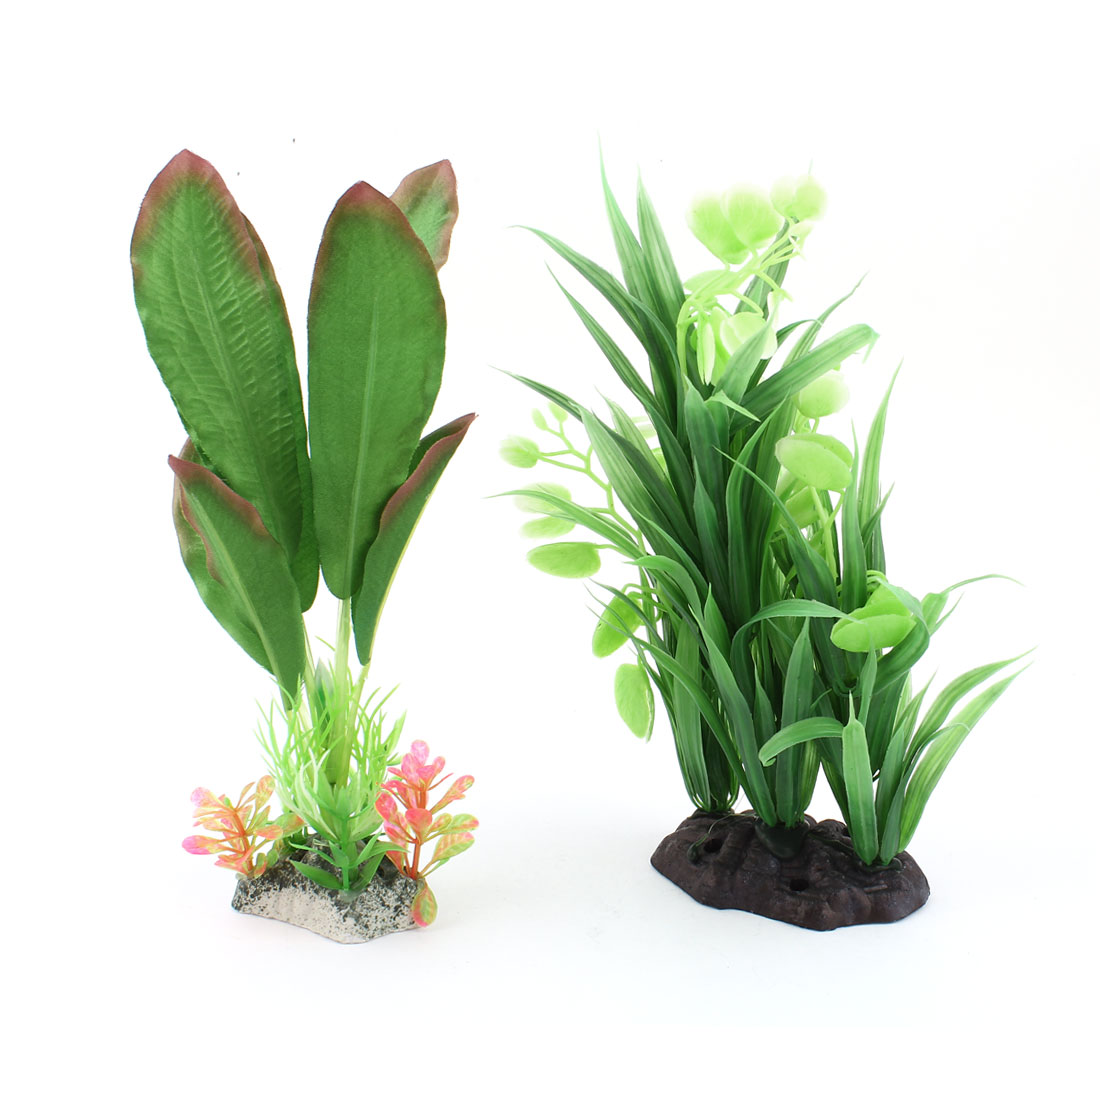 2 Pcs Aquarium Tank Green Plastic Underwater Plants Water Grass Decoration